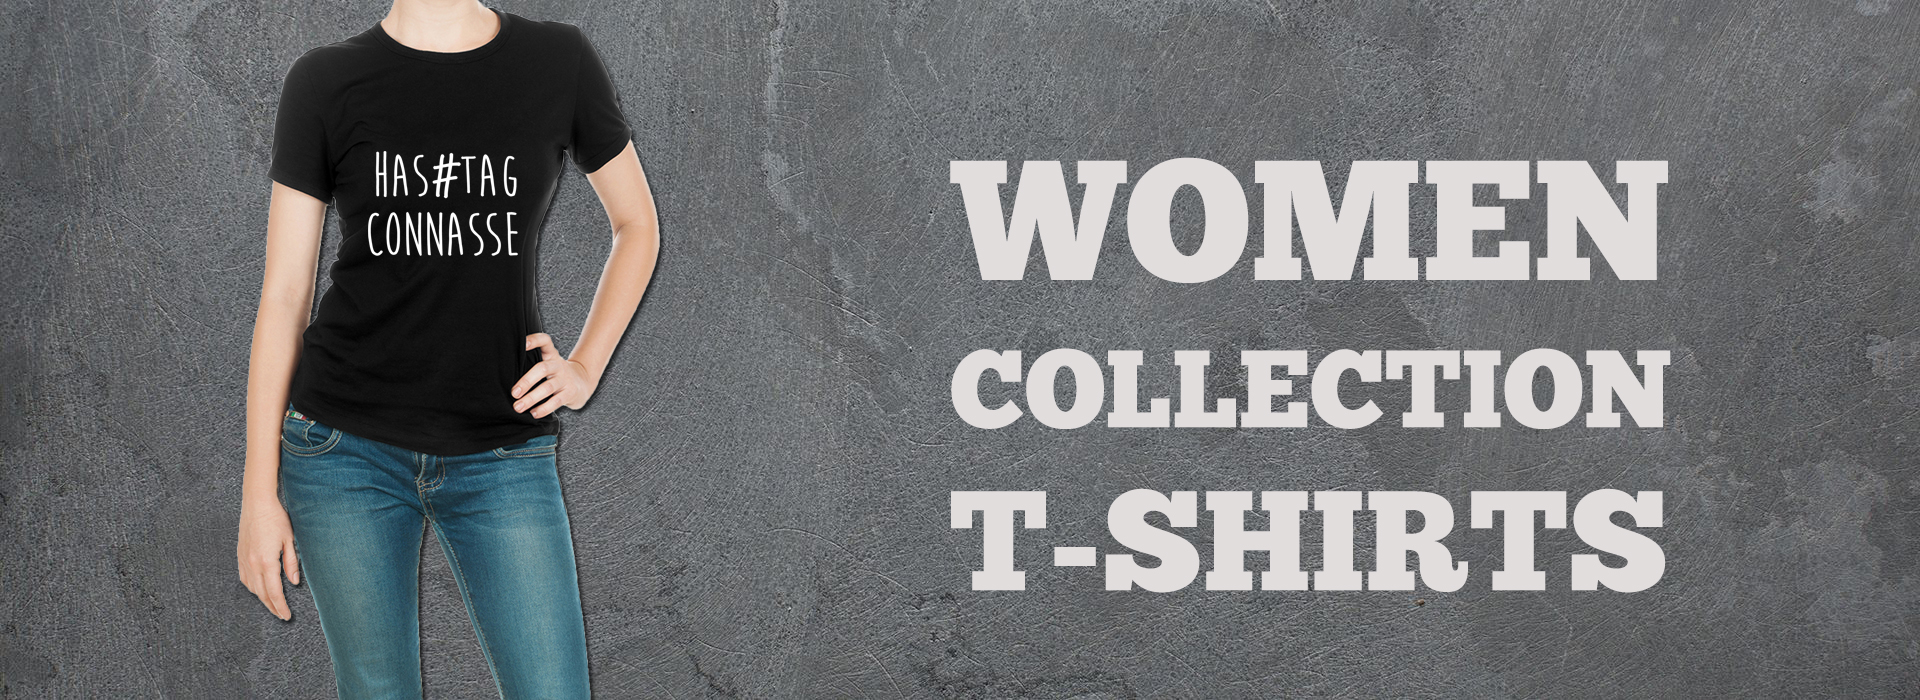 WOMEN COLLECTION : T-SHIRTS